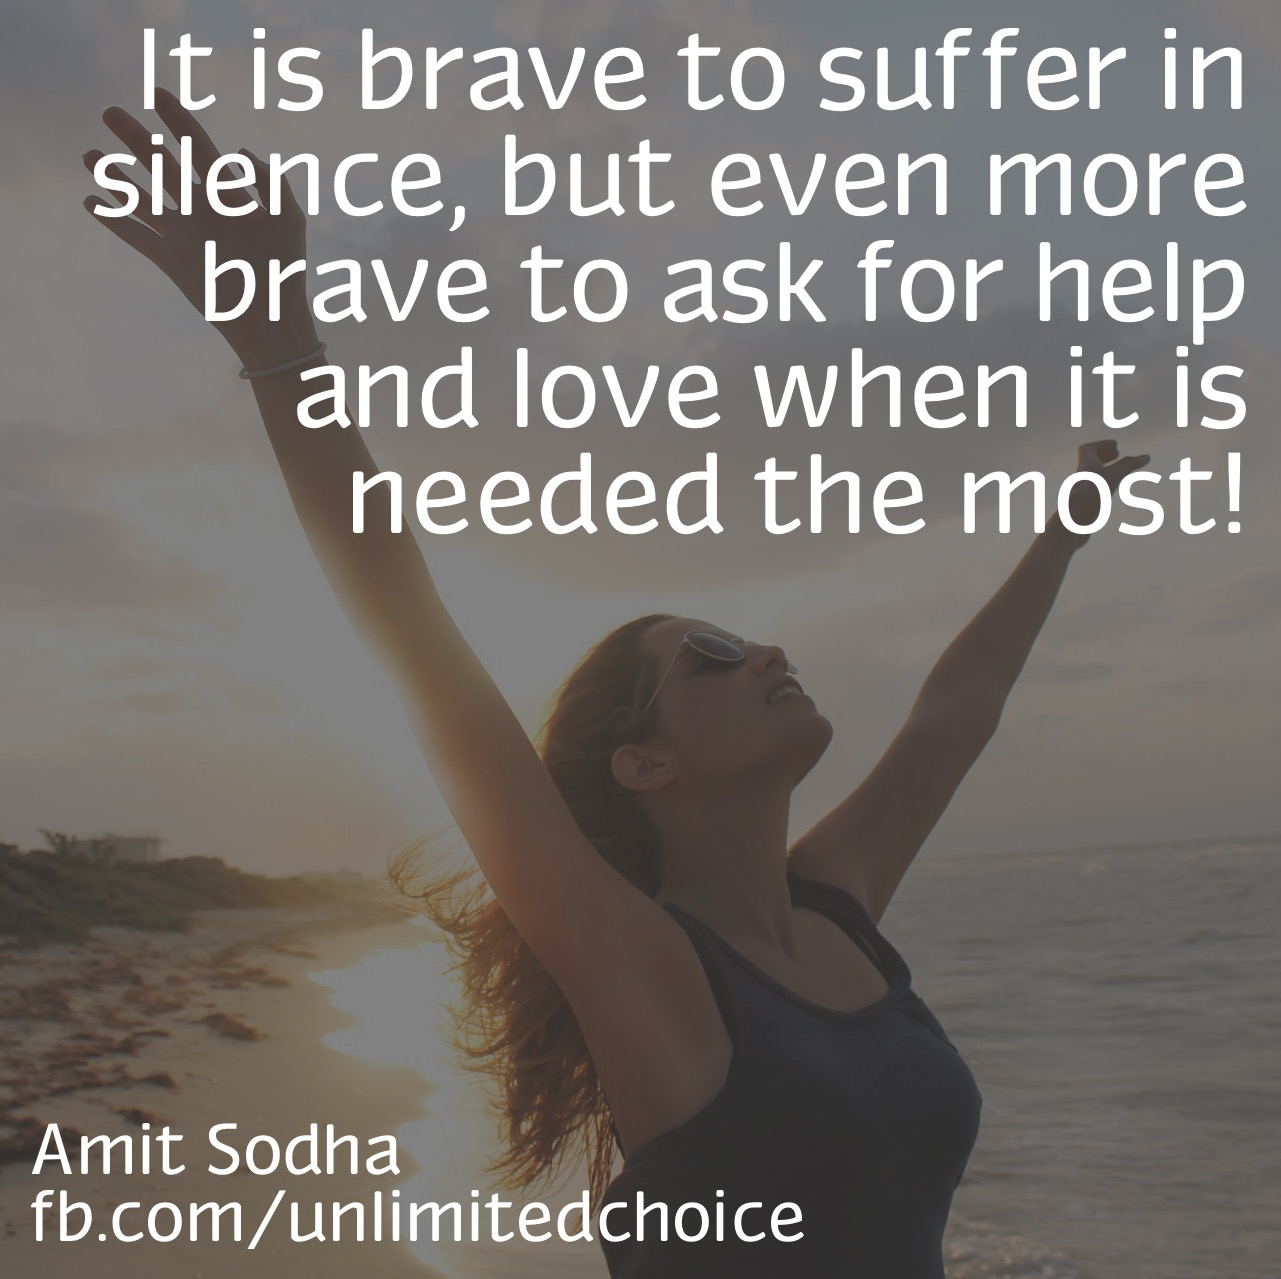 Uplifting Quotes 44 Wonderful Uplifting Quotes For Women  Unlimited Choice